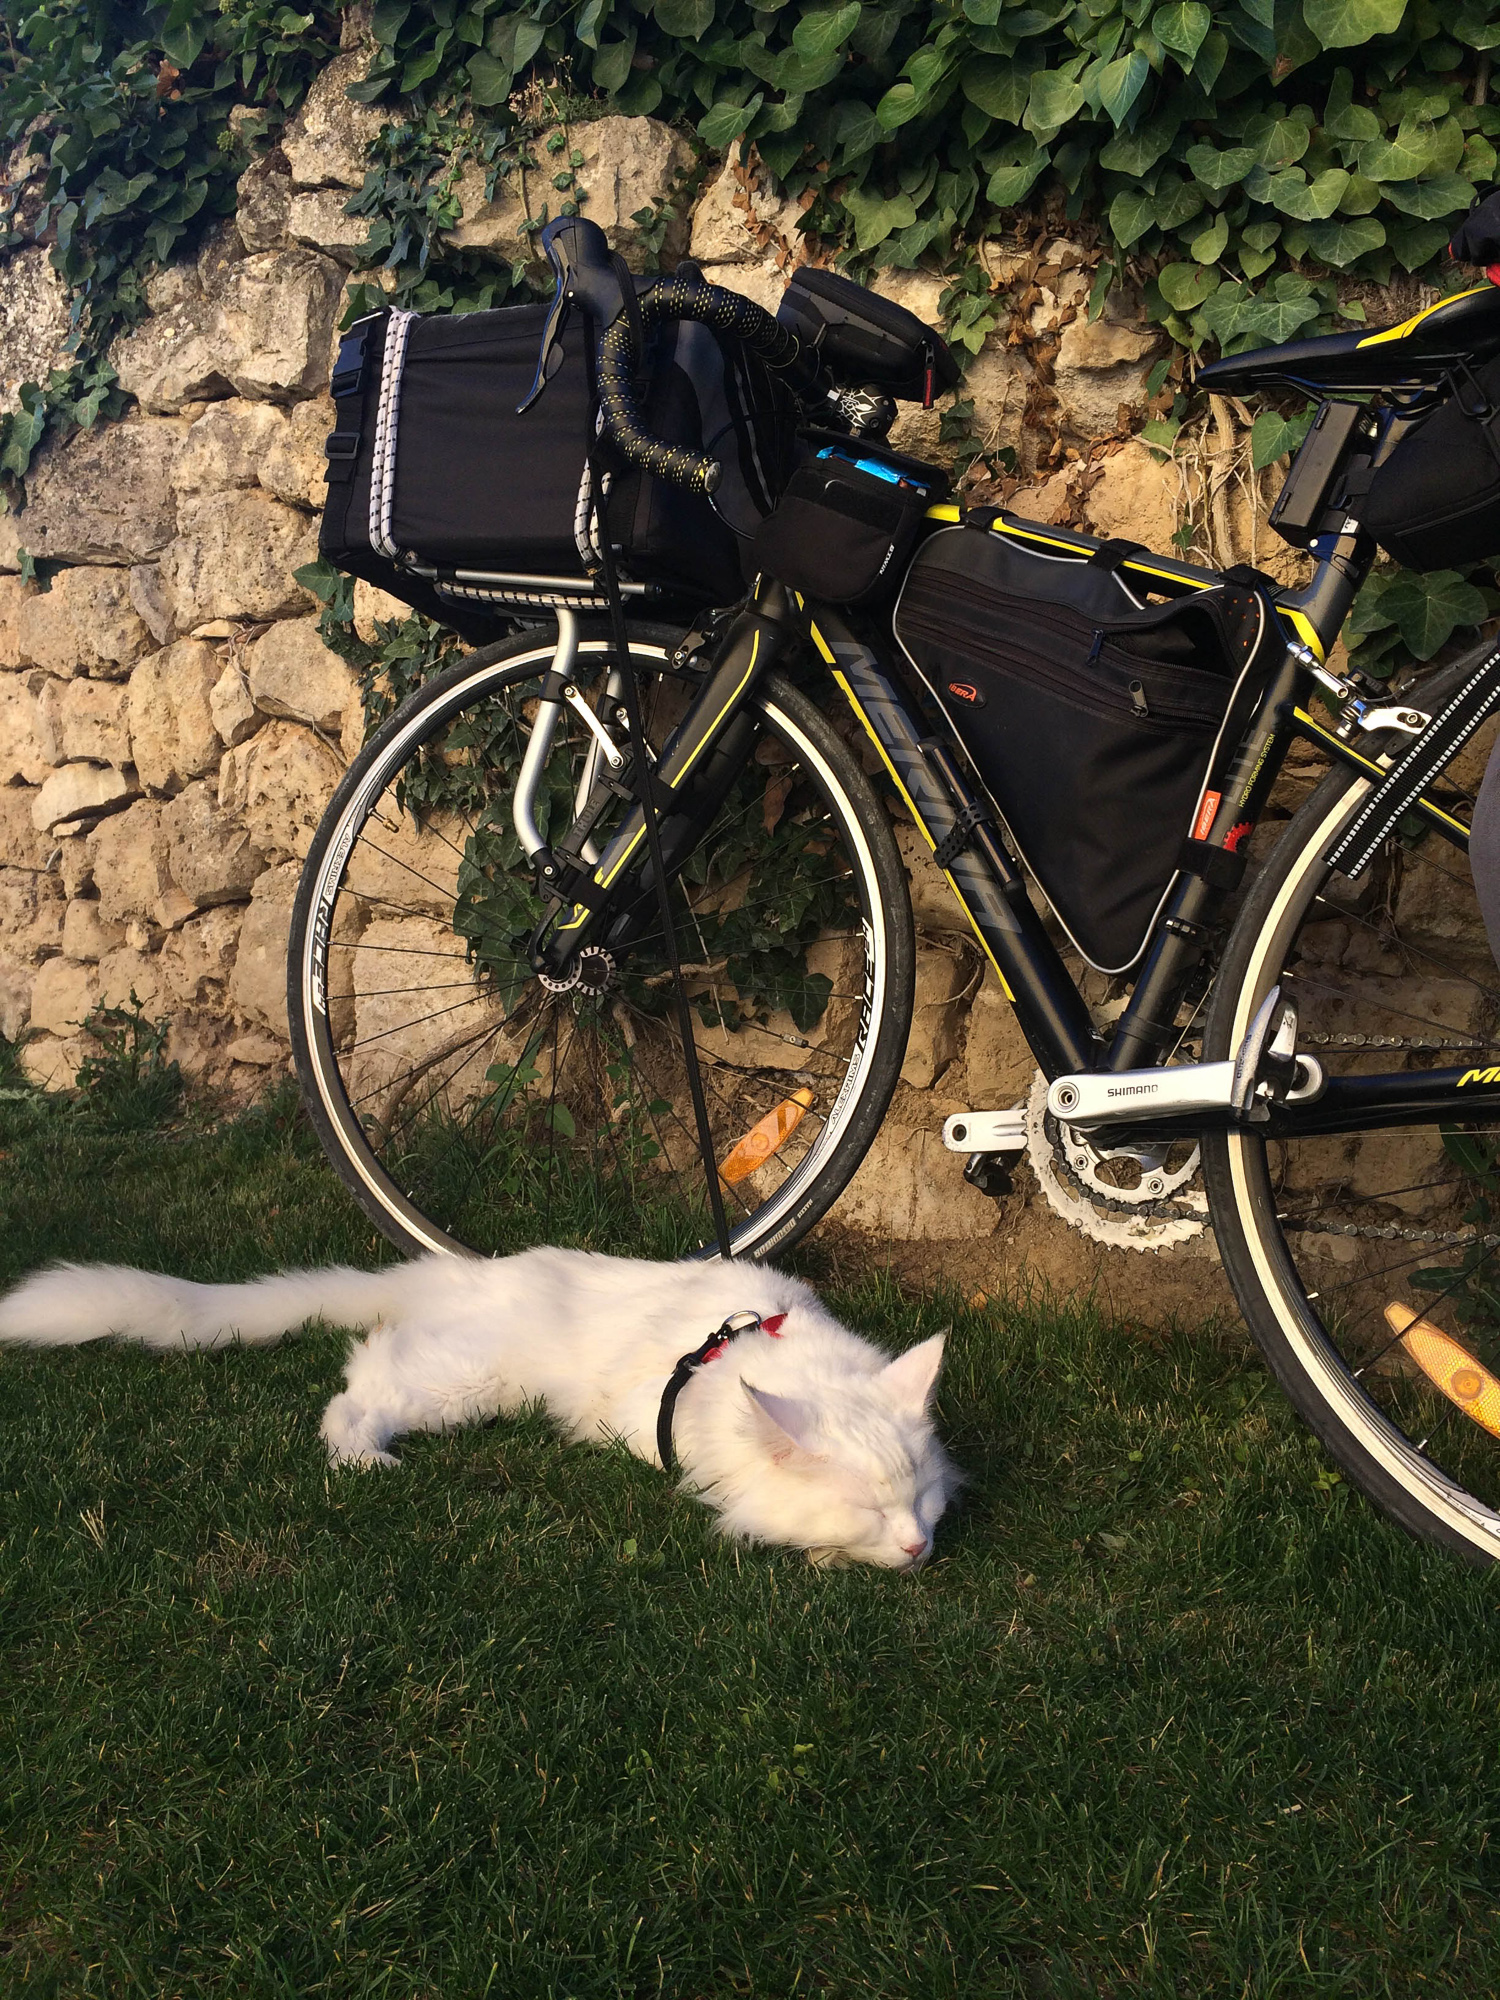 Nothing like a cat nap after a long day of bike riding in Spain! (Photo: Instagram/@cezars.crew)